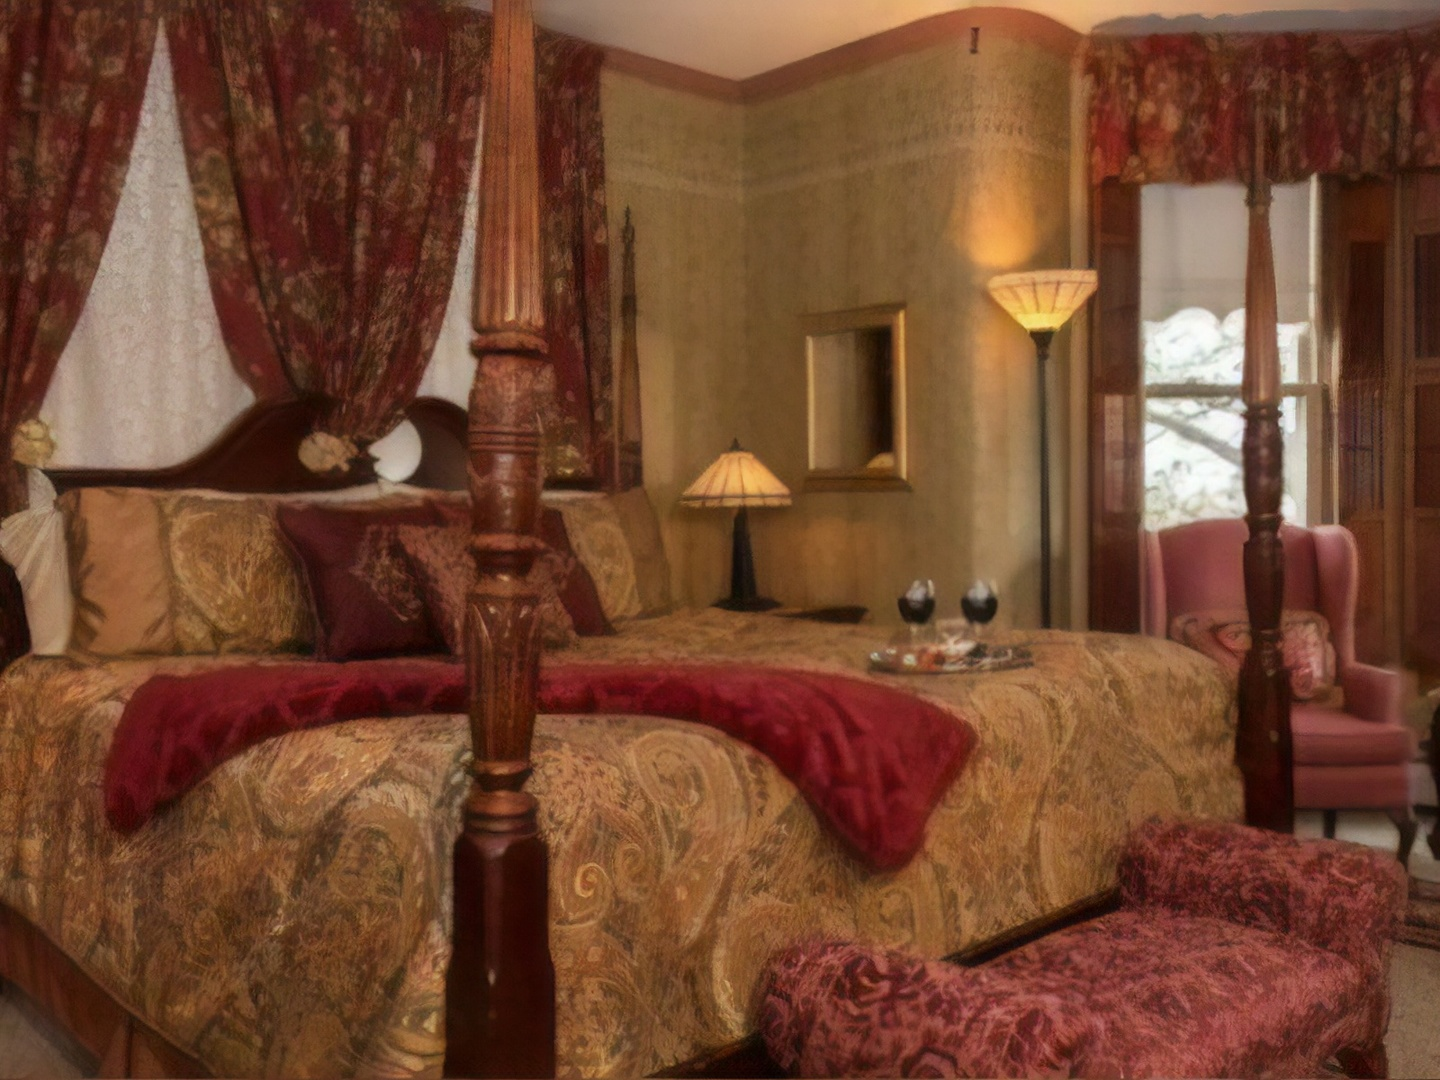 A bedroom with a large red chair in a room at Sutherland House Victorian B & B.